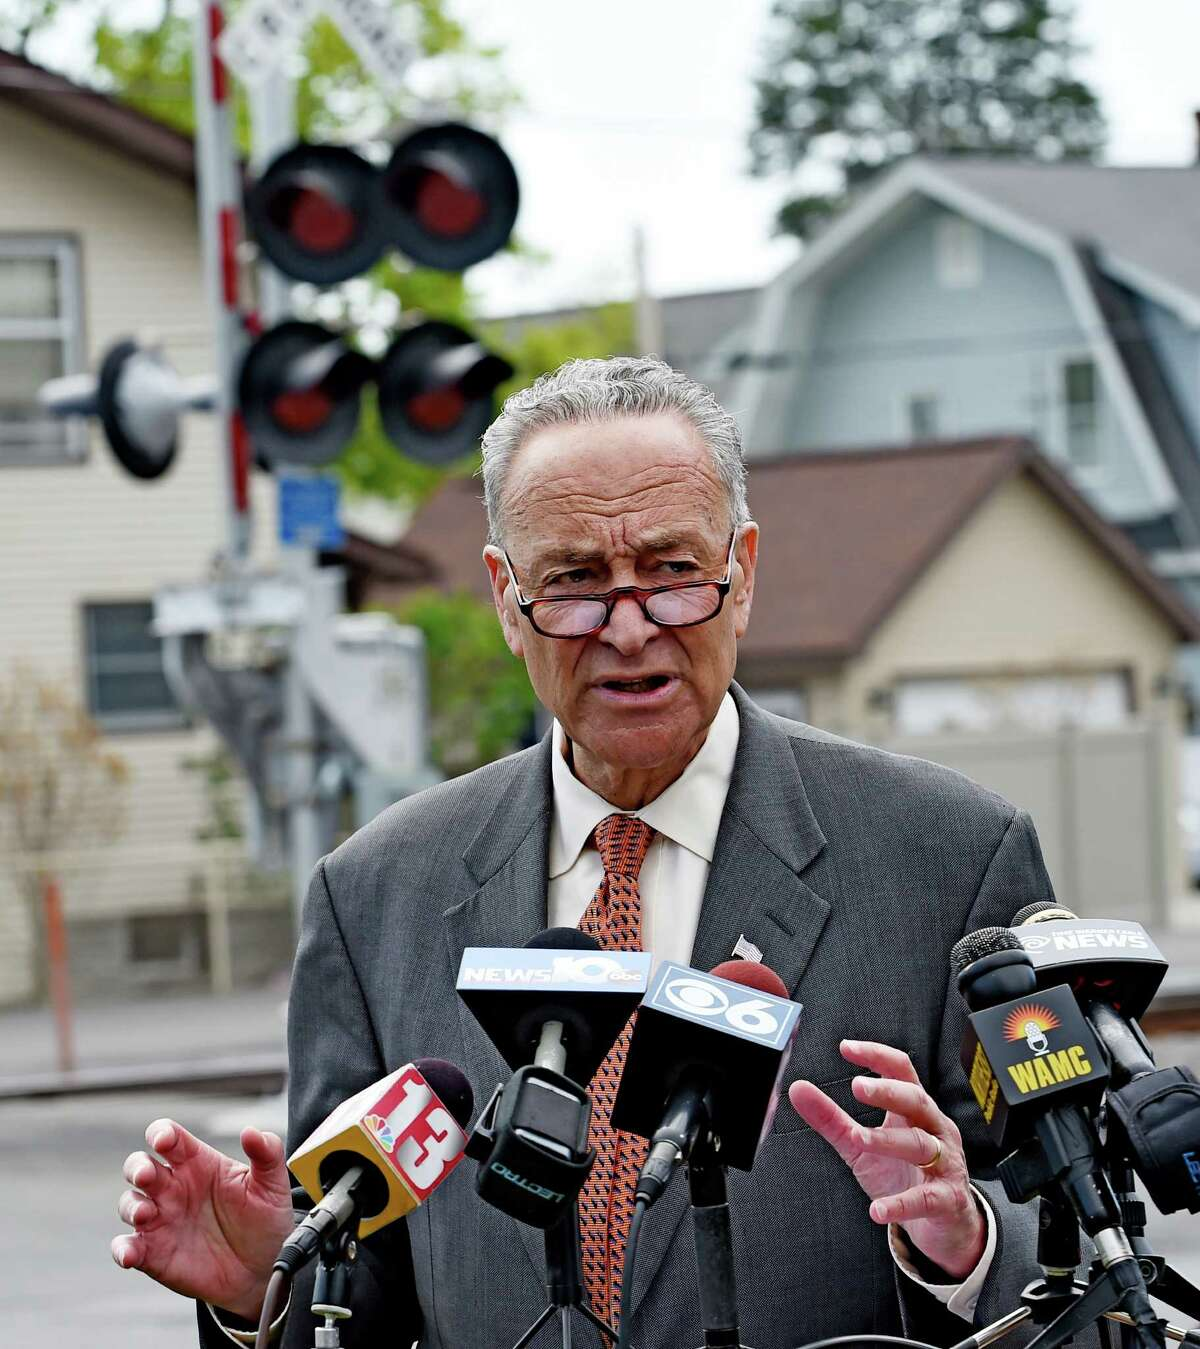 Senator Chuck Schumer call for stricter controls on the handling and transportation of crude oil Monday morning May 4, 2015 near a railroad line in Menands, N.Y. (Skip Dickstein/Times Union)